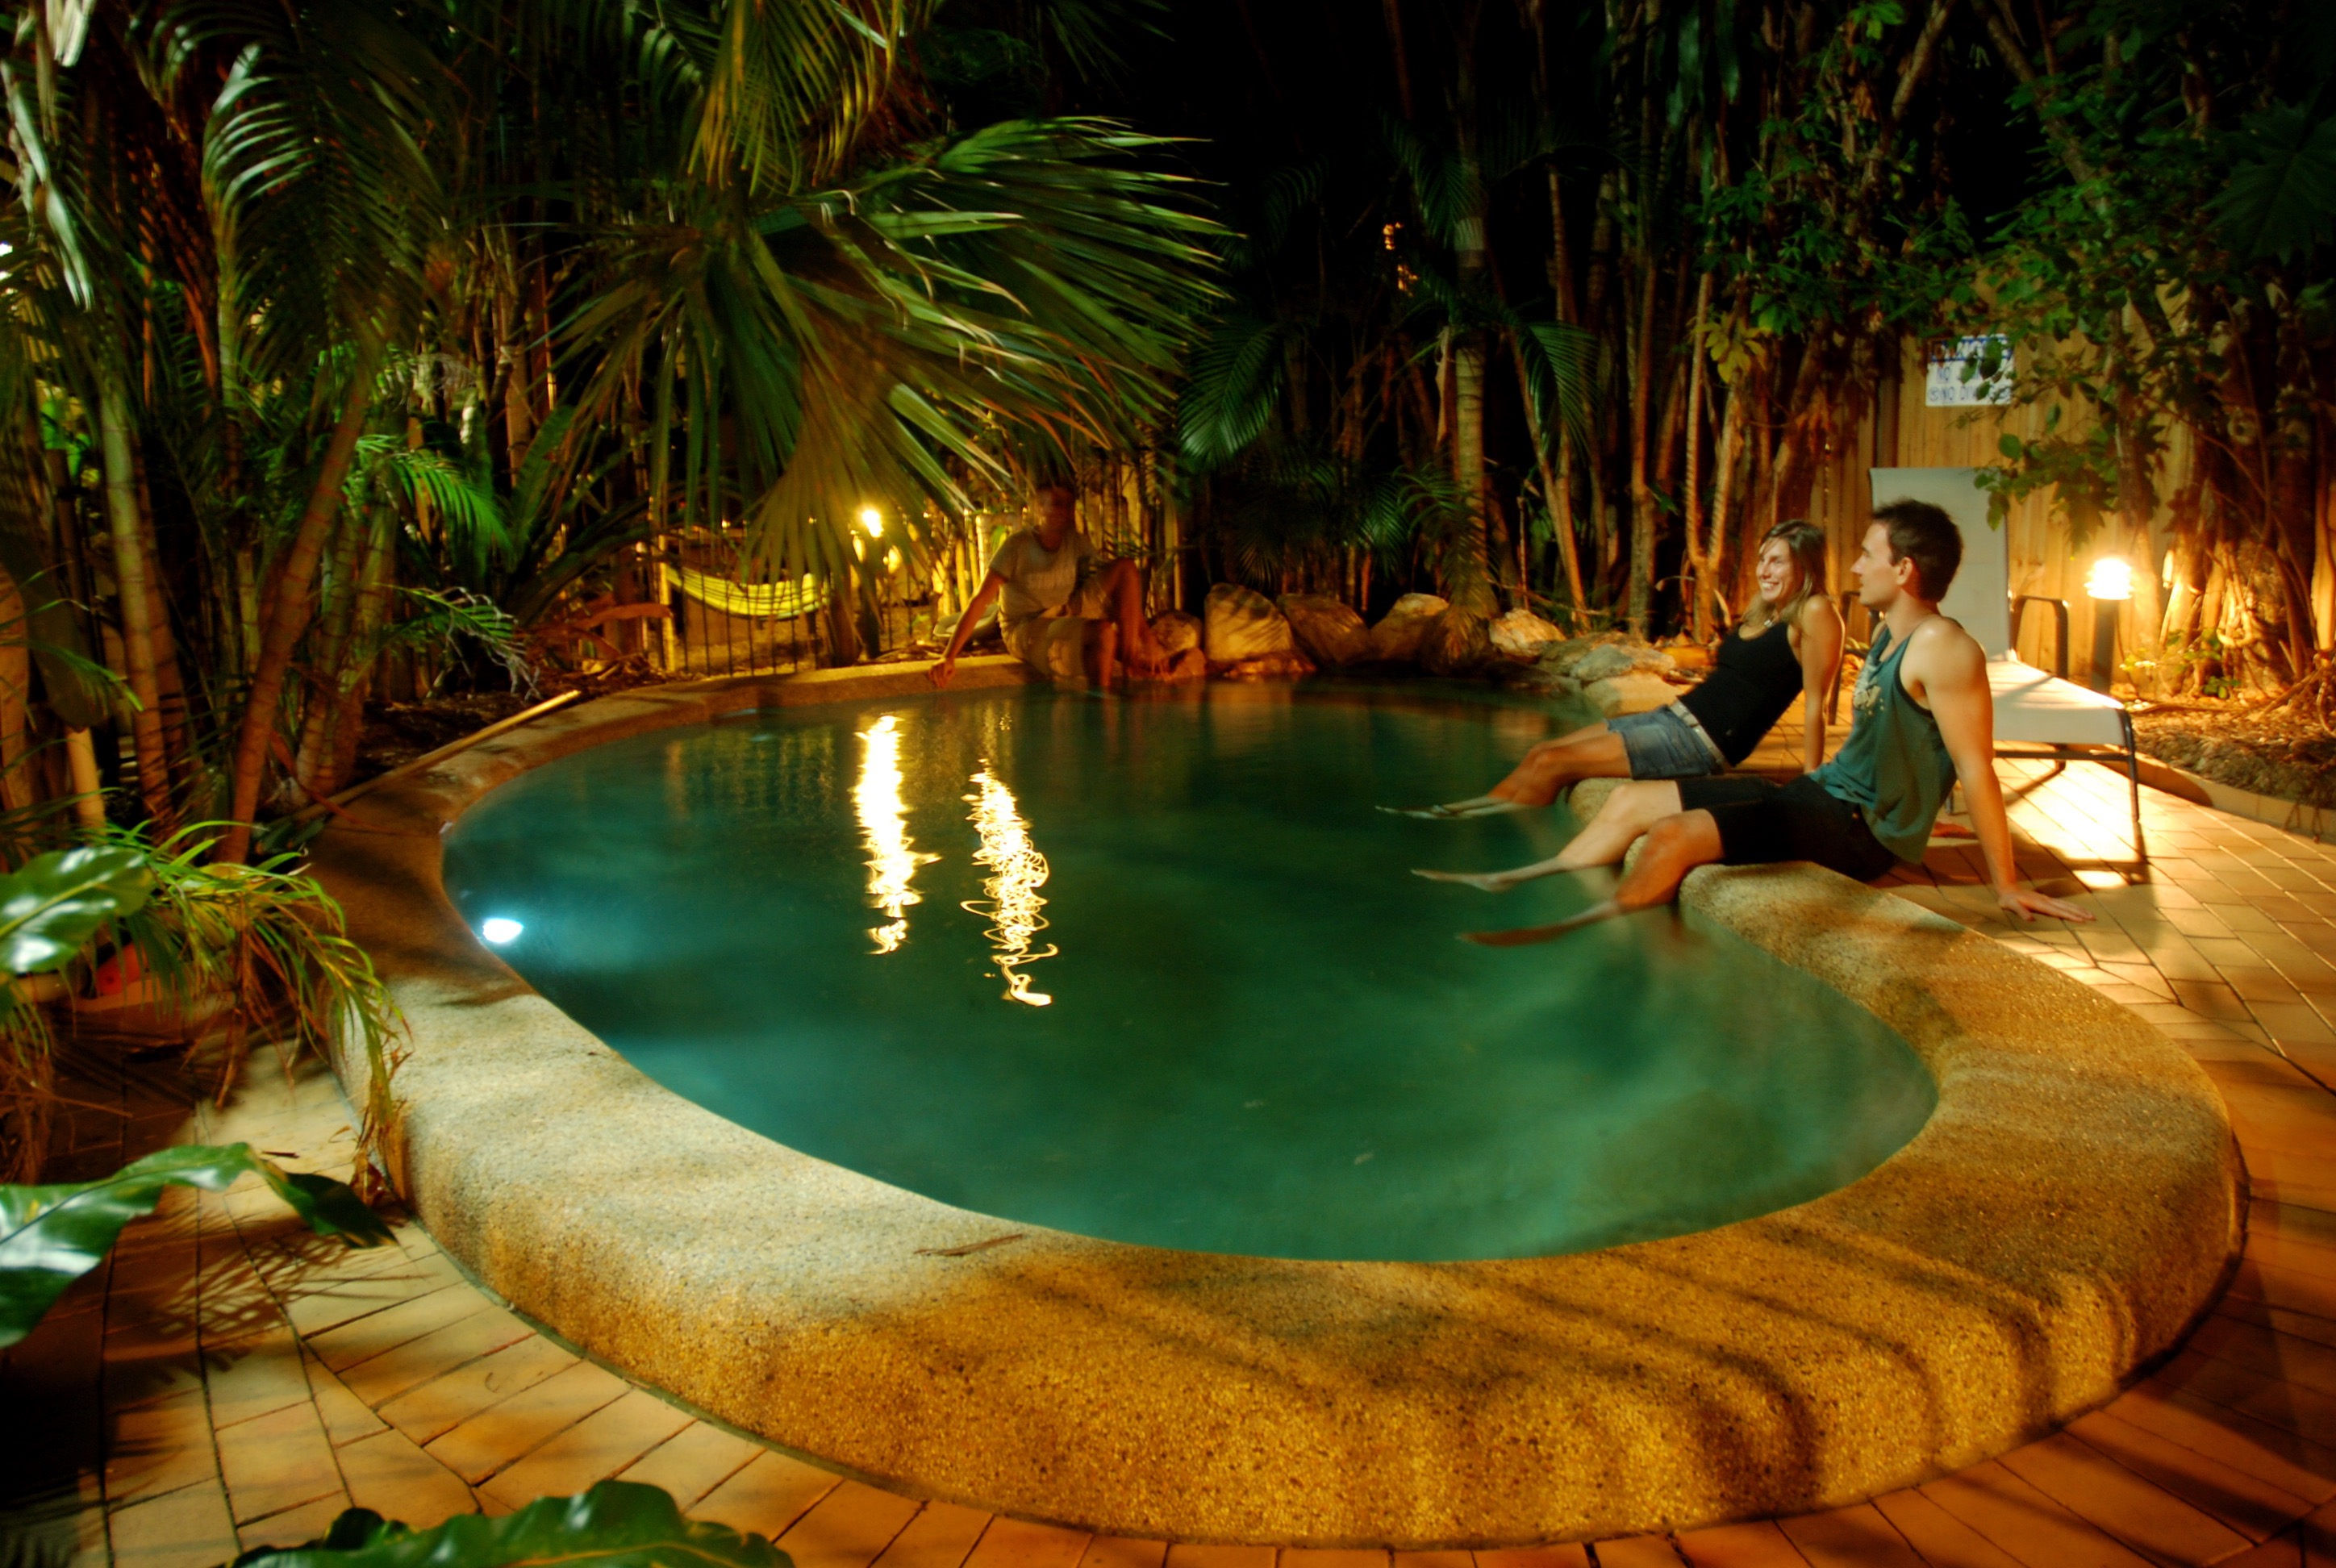 Dreamtime-Hostel-Cairns-Australia-Swimming-Pool-great-location-price